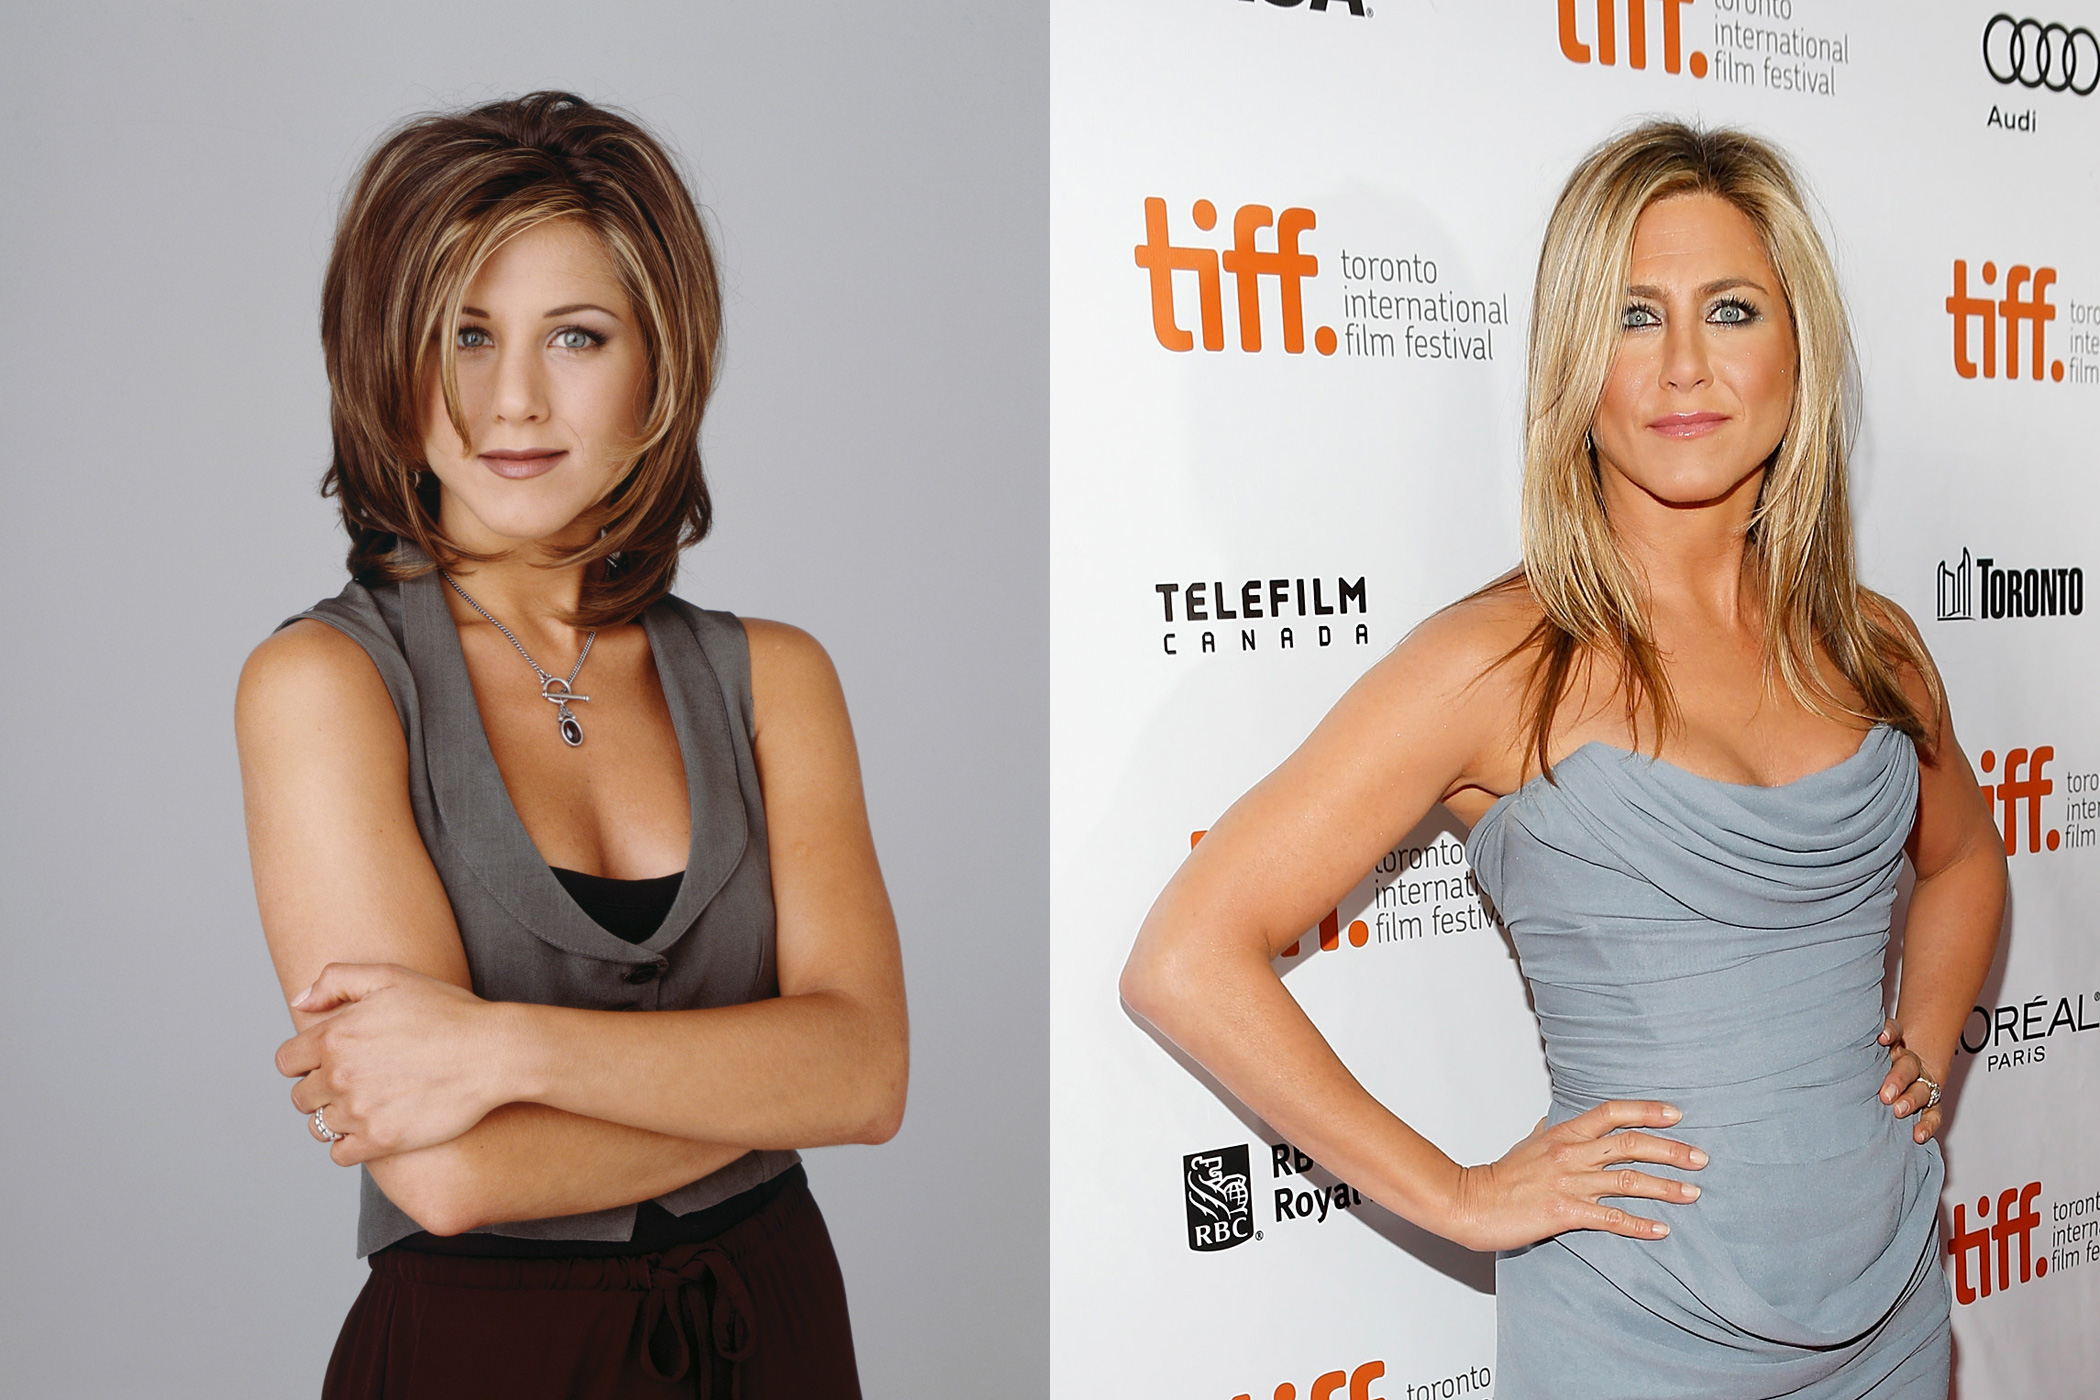 <strong>1. Jennifer Aniston (Rachel Green)                                   </strong>                                   Let's put it this way: Jennifer Aniston is the only <i>Friends</i> star who would unquestionably be able to headline a movie or book a magazine cover today. She's starred in recent high grossing films including <i>Horrible Bosses</i> and <i>We're the Millers</i>, and nabbed <i>Men's Health</i>'s 2013 Sexiest Woman of all Time.